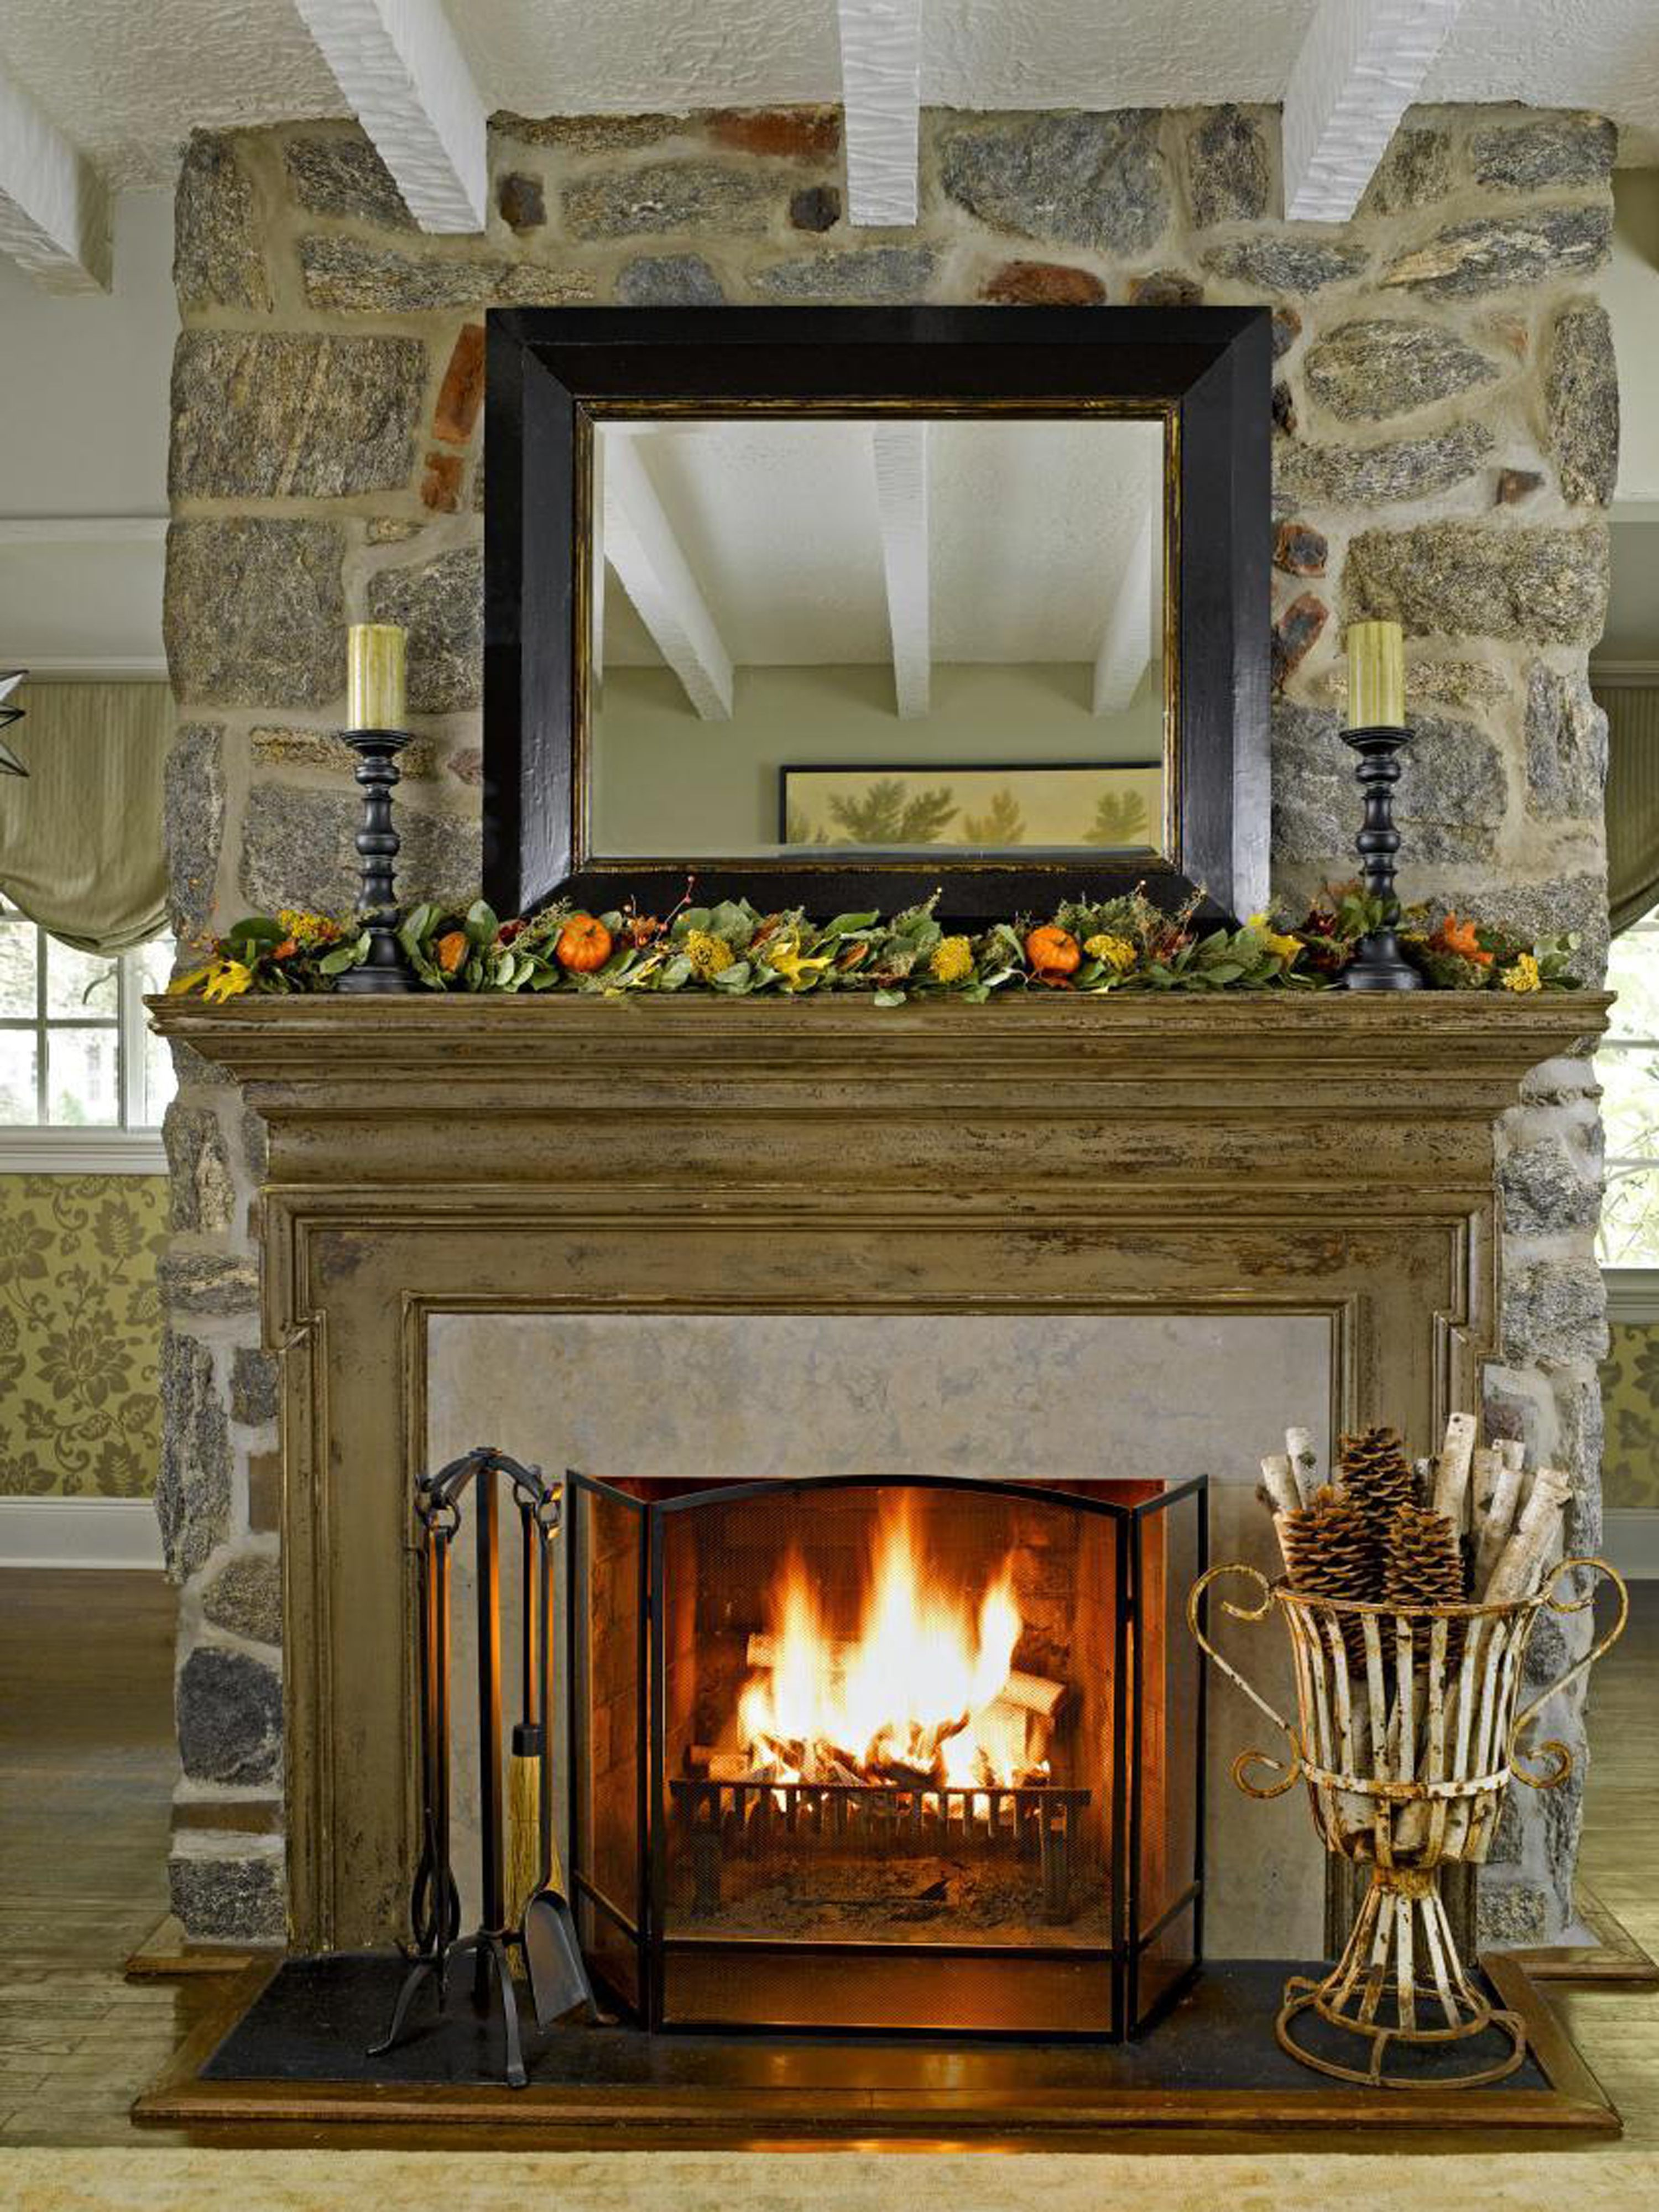 Fall Fireplace Mantel Decorating Ideas: 35 Absolutely Stunning Ways To Decorate Your Mantel For